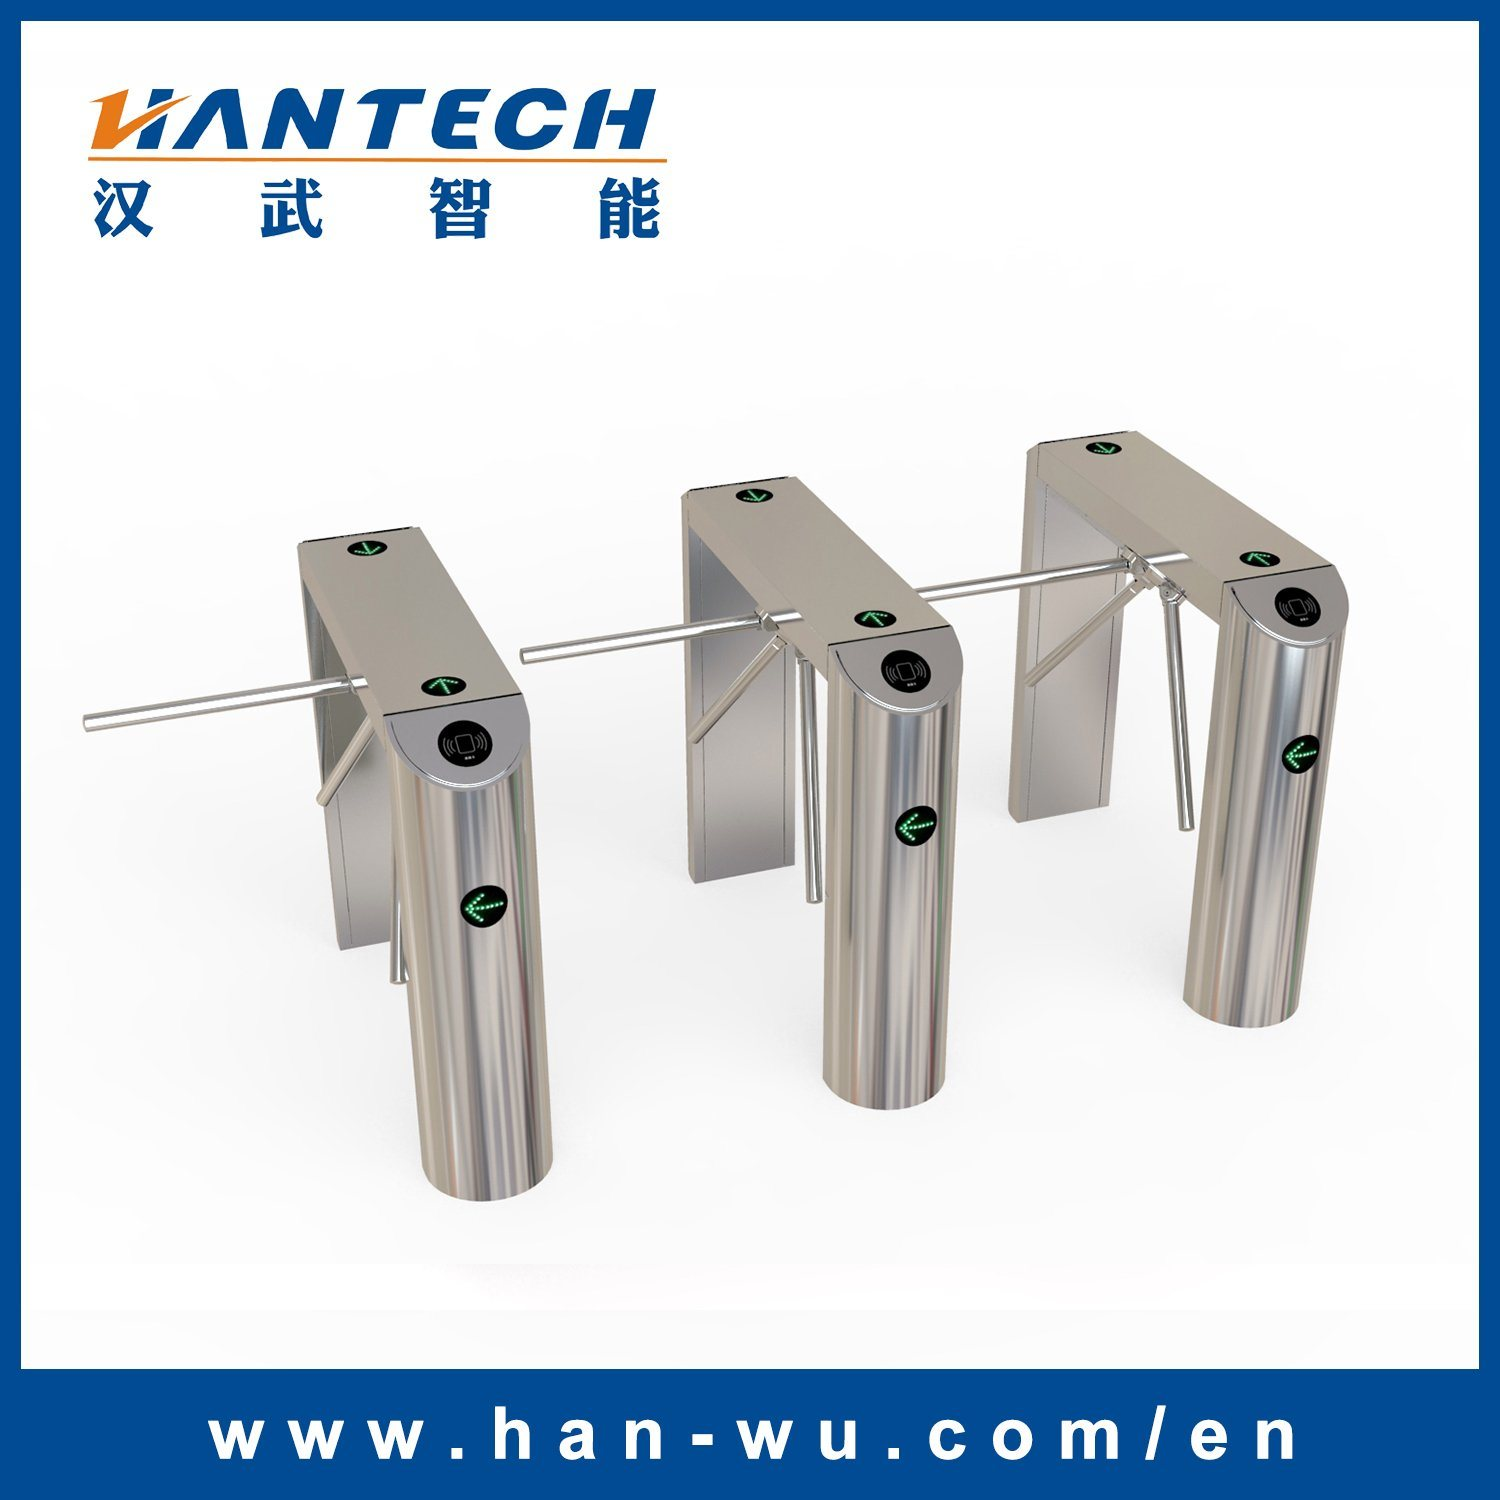 Automatic Pedestrian Tripod Turnstile for Entrance Control System